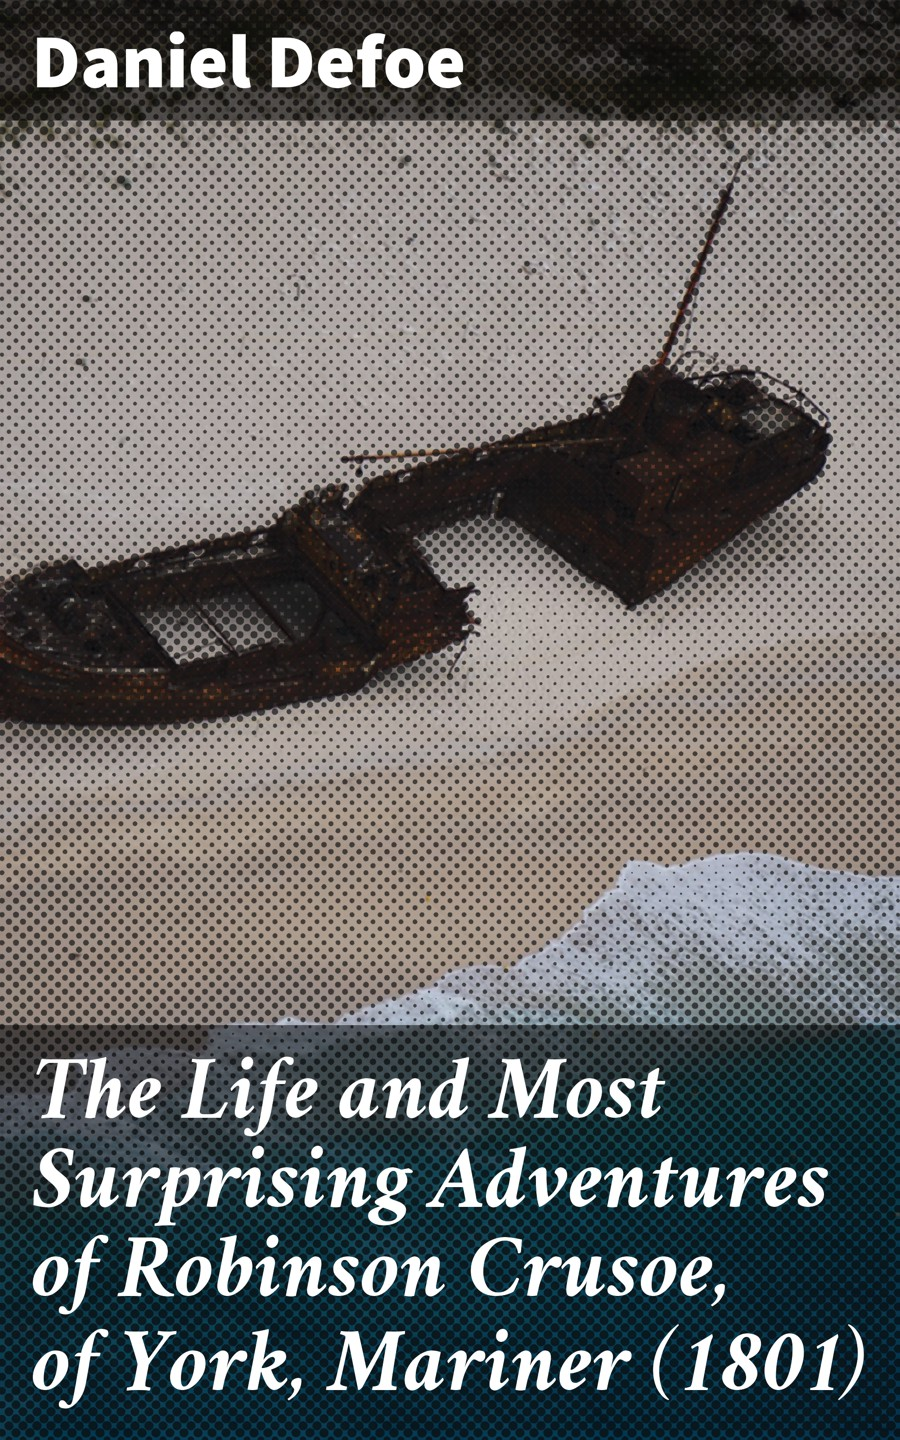 The Life and Most Surprising Adventures of Robinson Crusoe, of York, Mariner (1801)